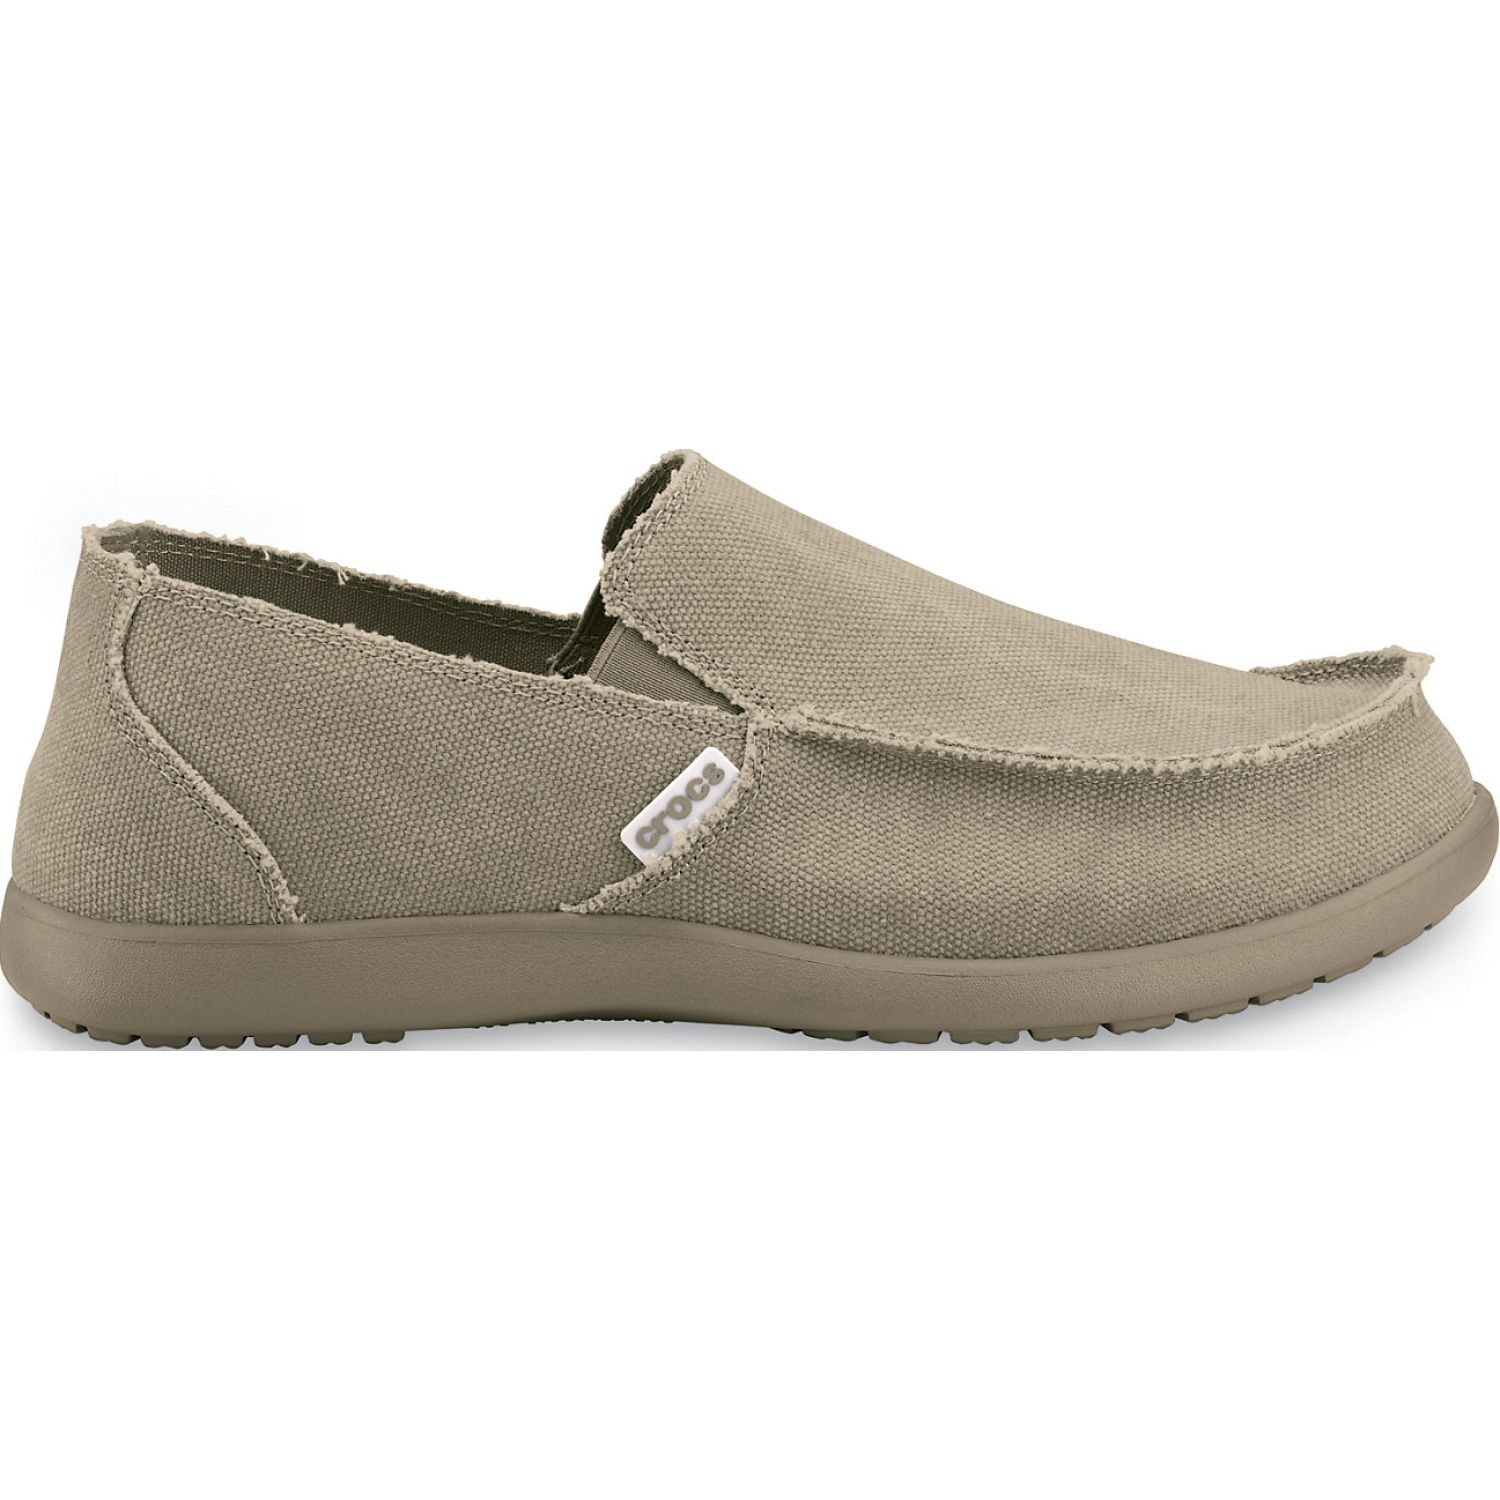 CROCS Men's Santa Cruz Slip-On Kaki Oxfords